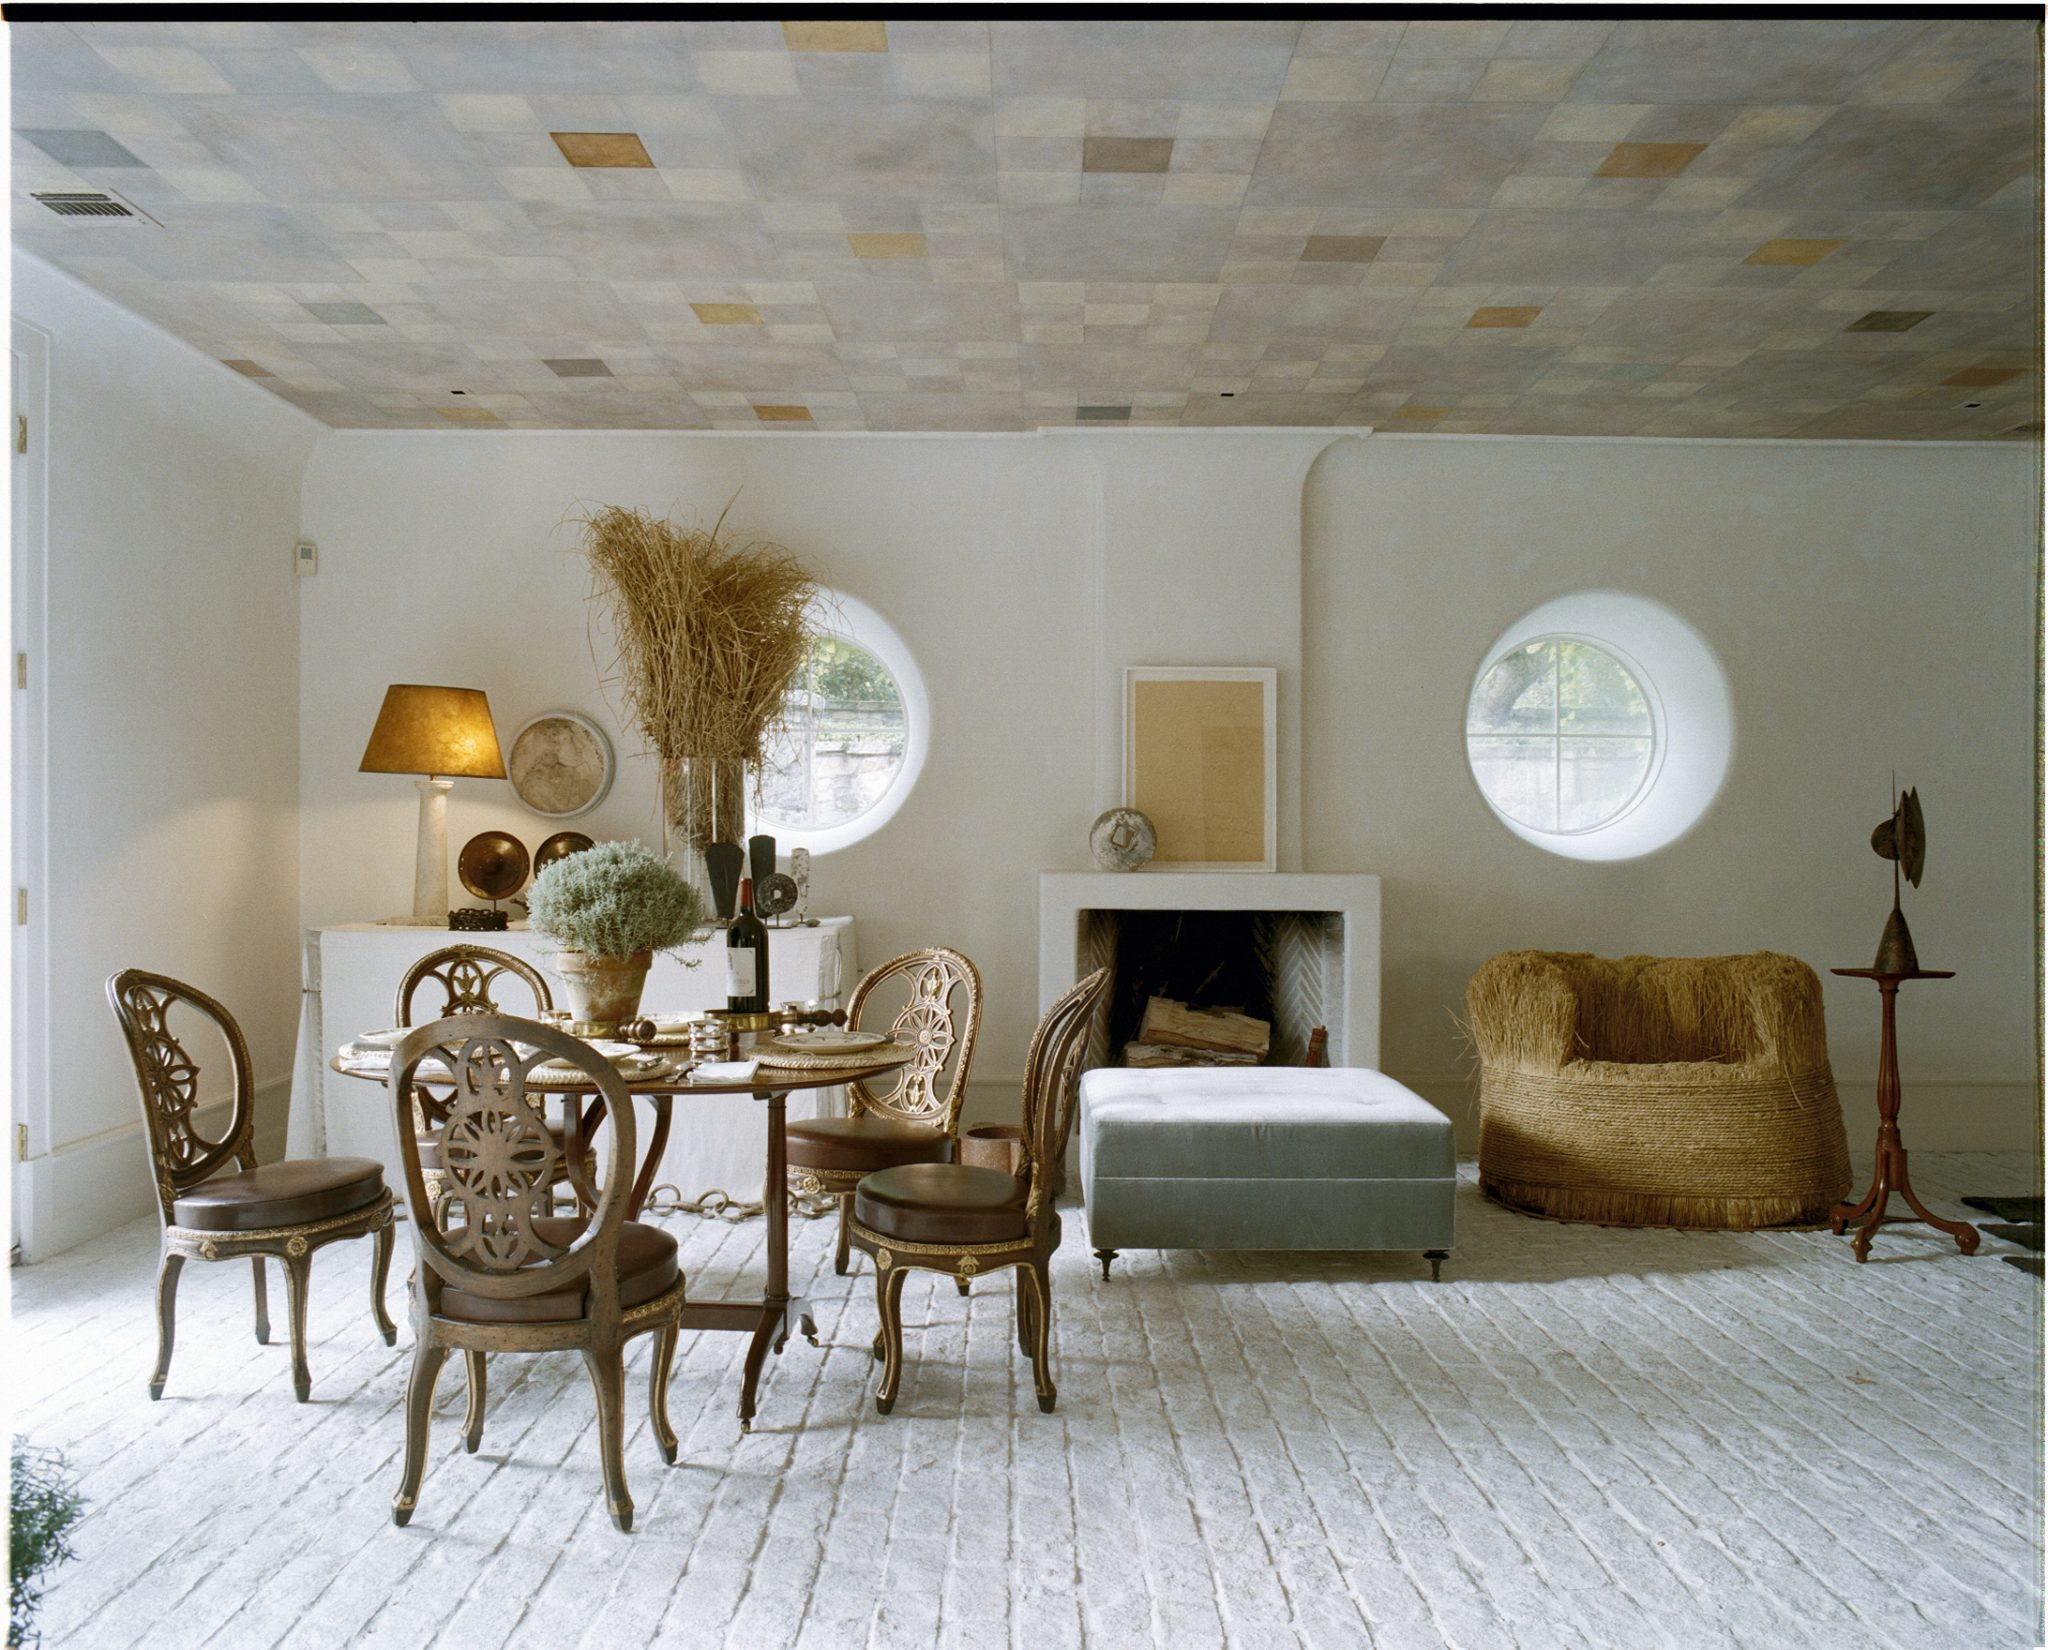 Living room with contemporary and classic furniture, patterned ceiling by Stephen Sills Associates